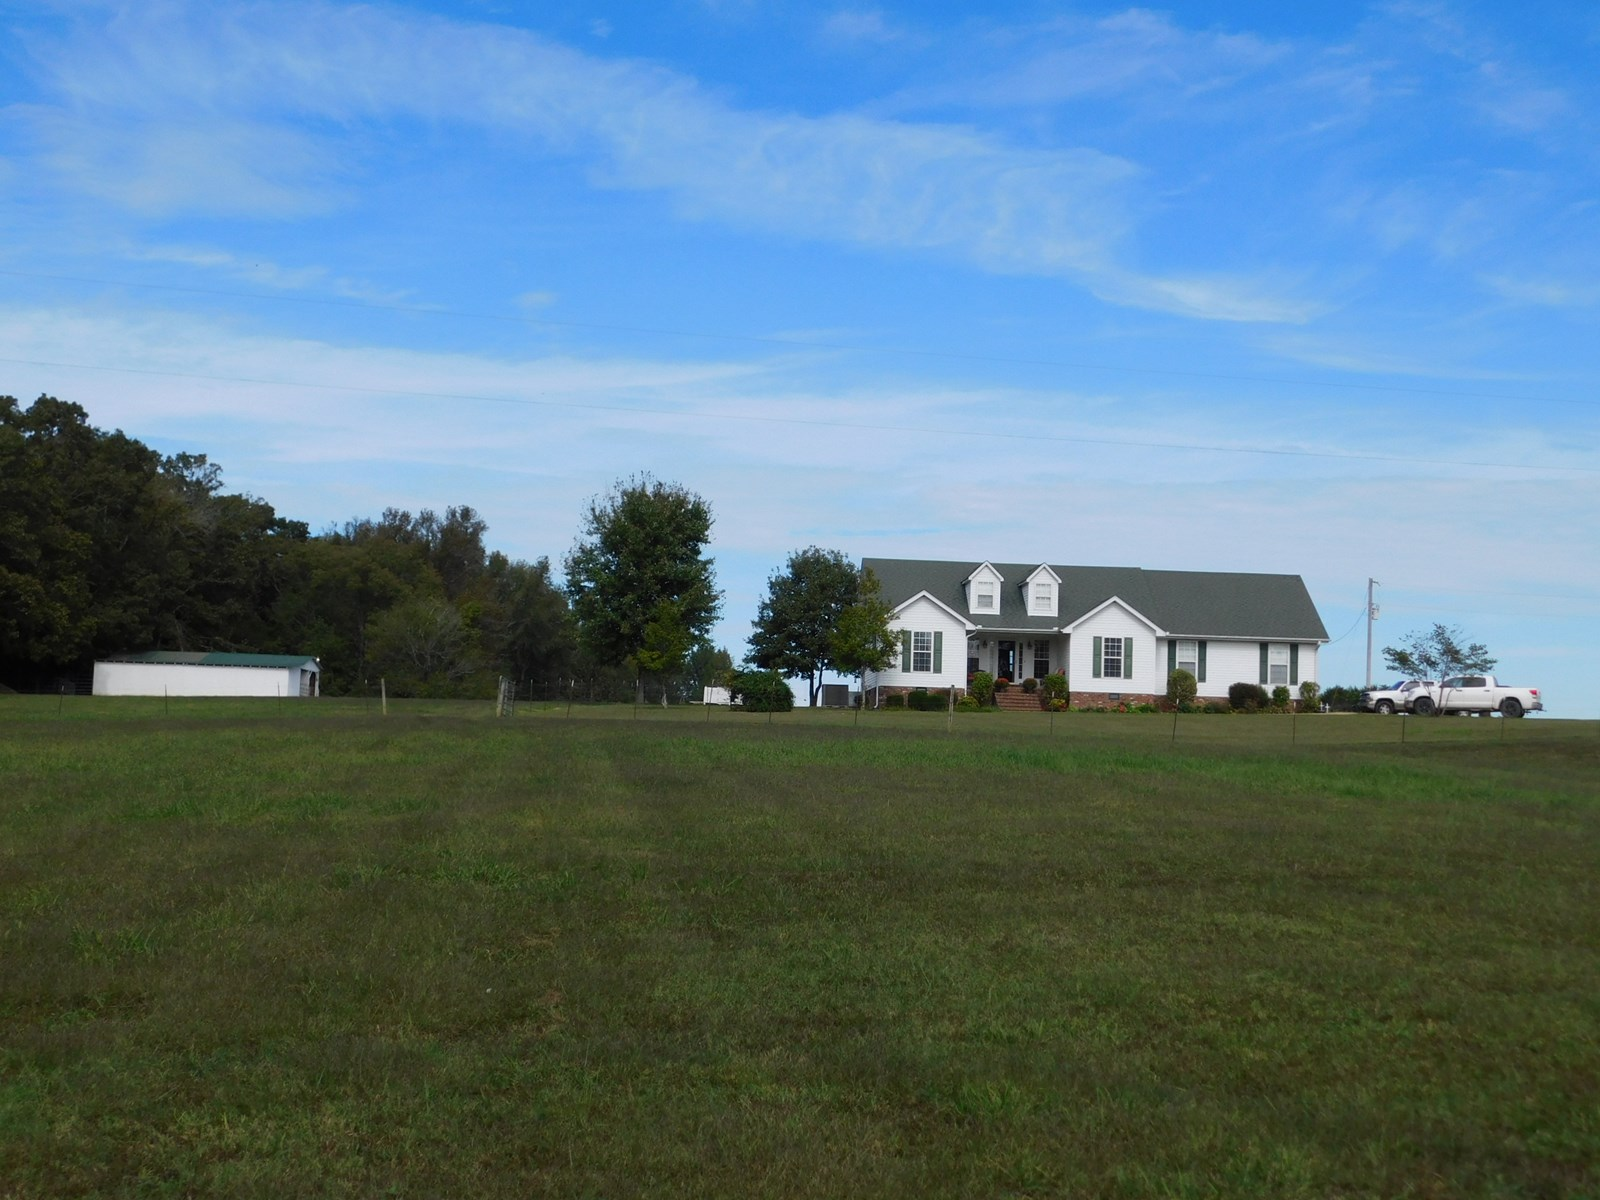 FARM FOR SALE IN TN WITH PASTURE, POND, BARN, FENCING